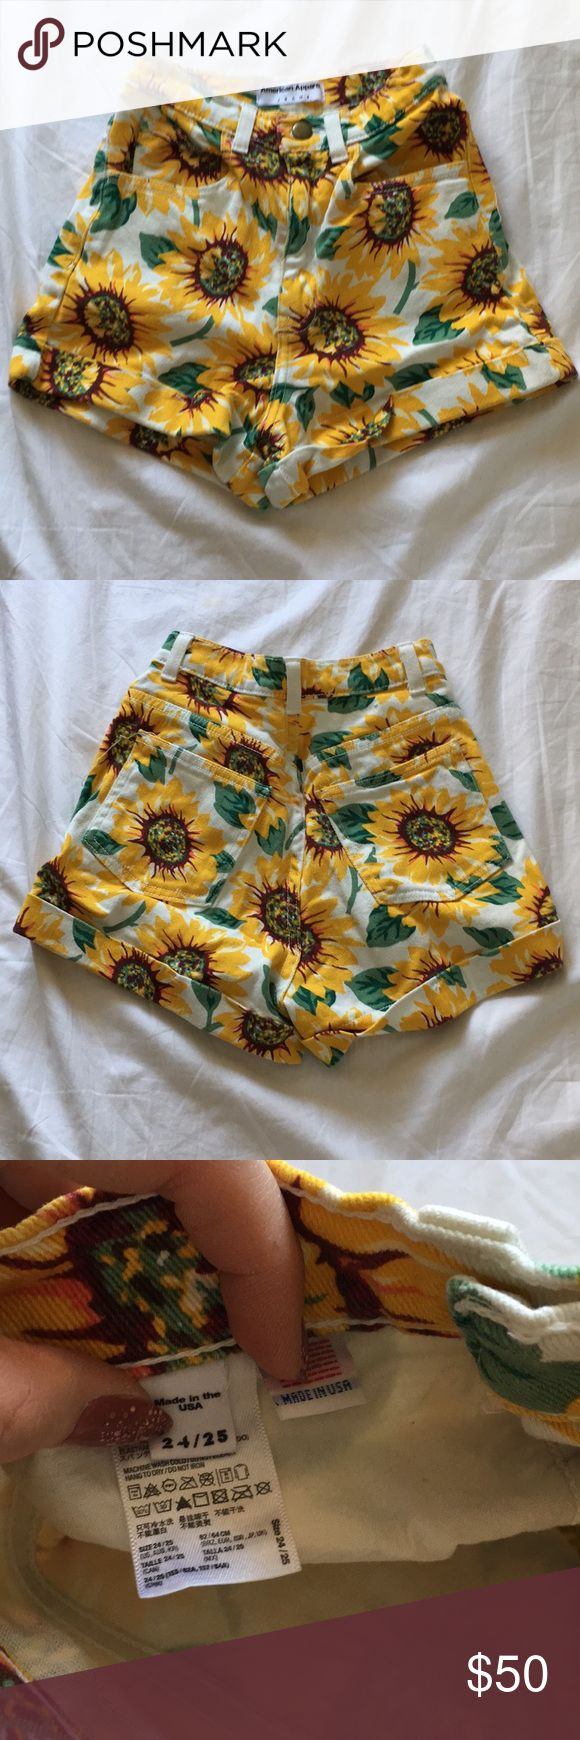 DEADSTOCK American apparel sunflower shorts High waisted sunflower shorts size 24/25. Worn once American Apparel Shorts Jean Shorts